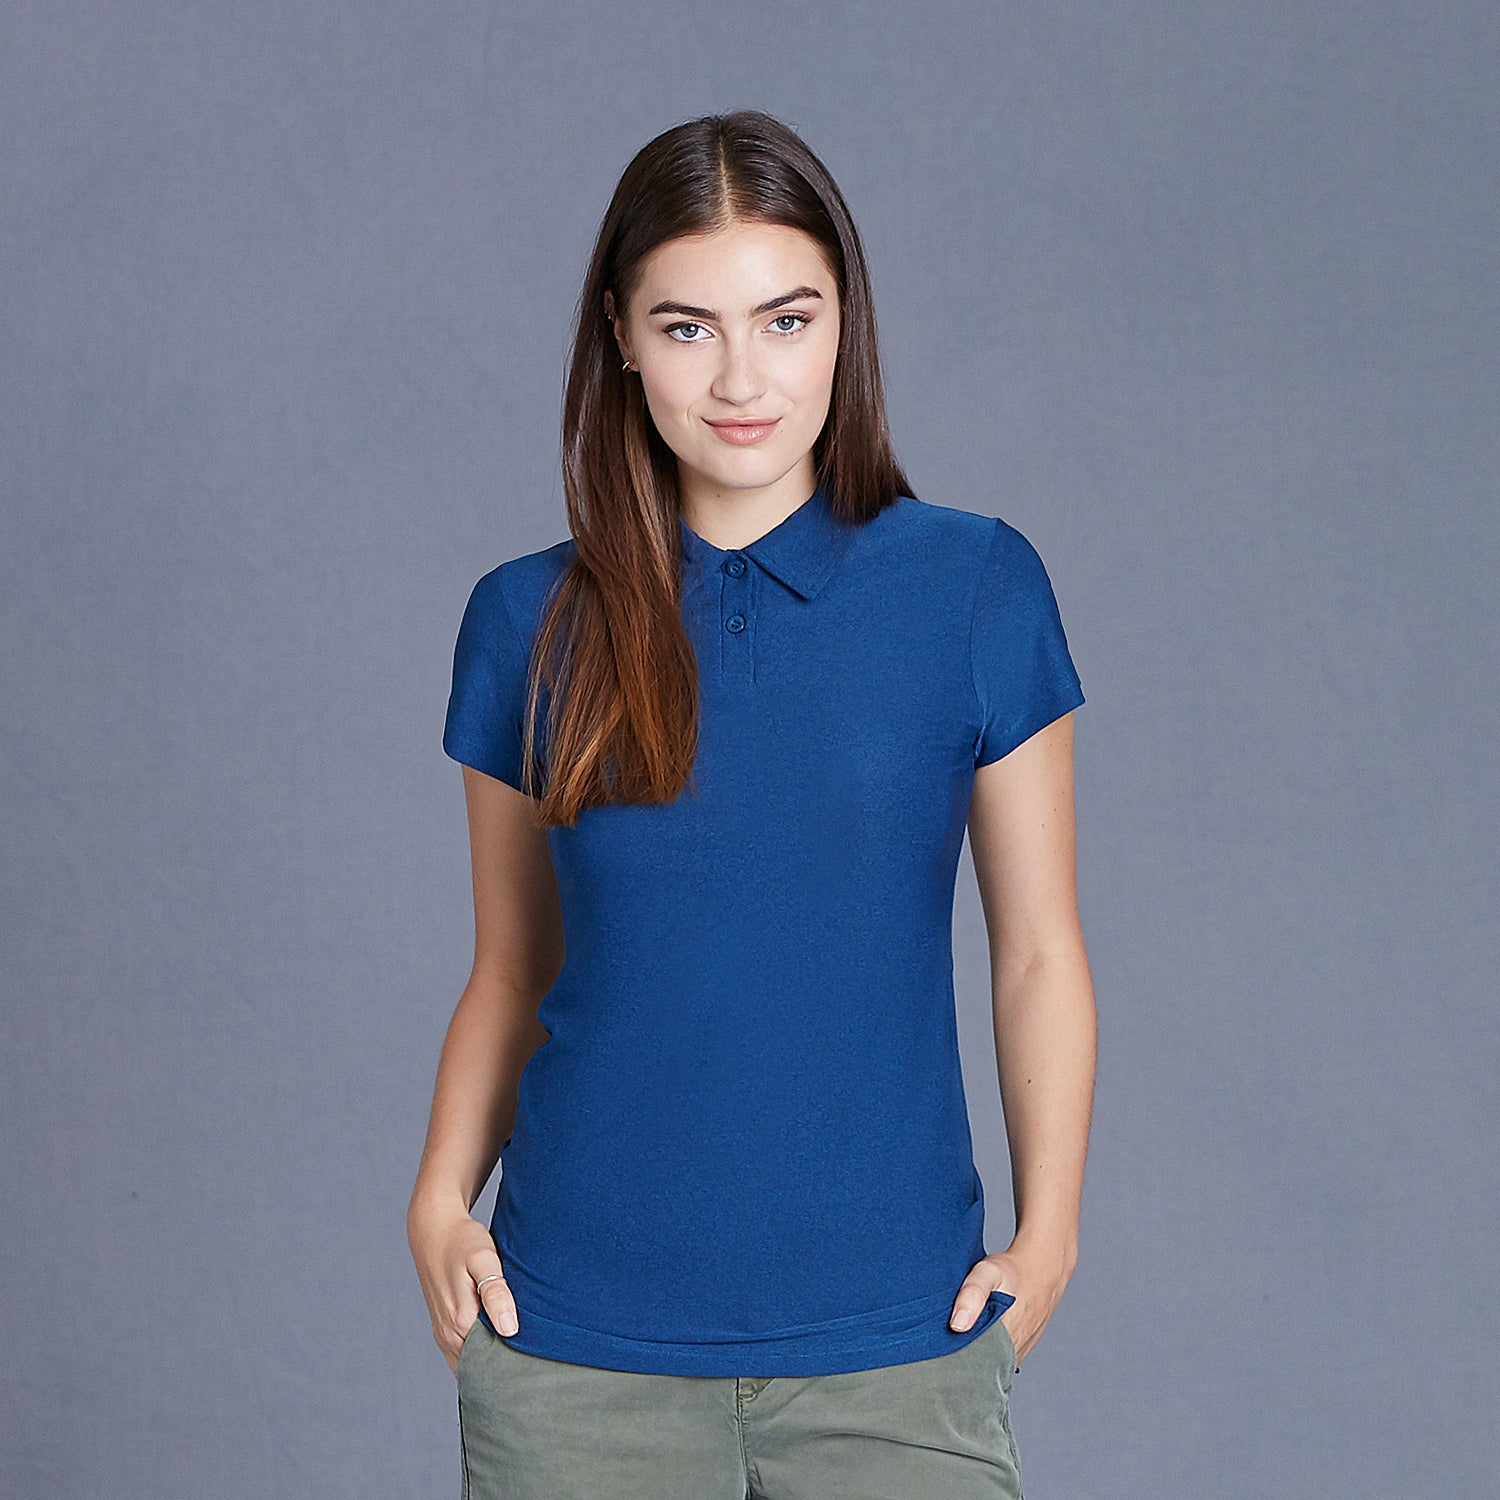 W19714 - CoolLast Ladies Heather Lux Polo